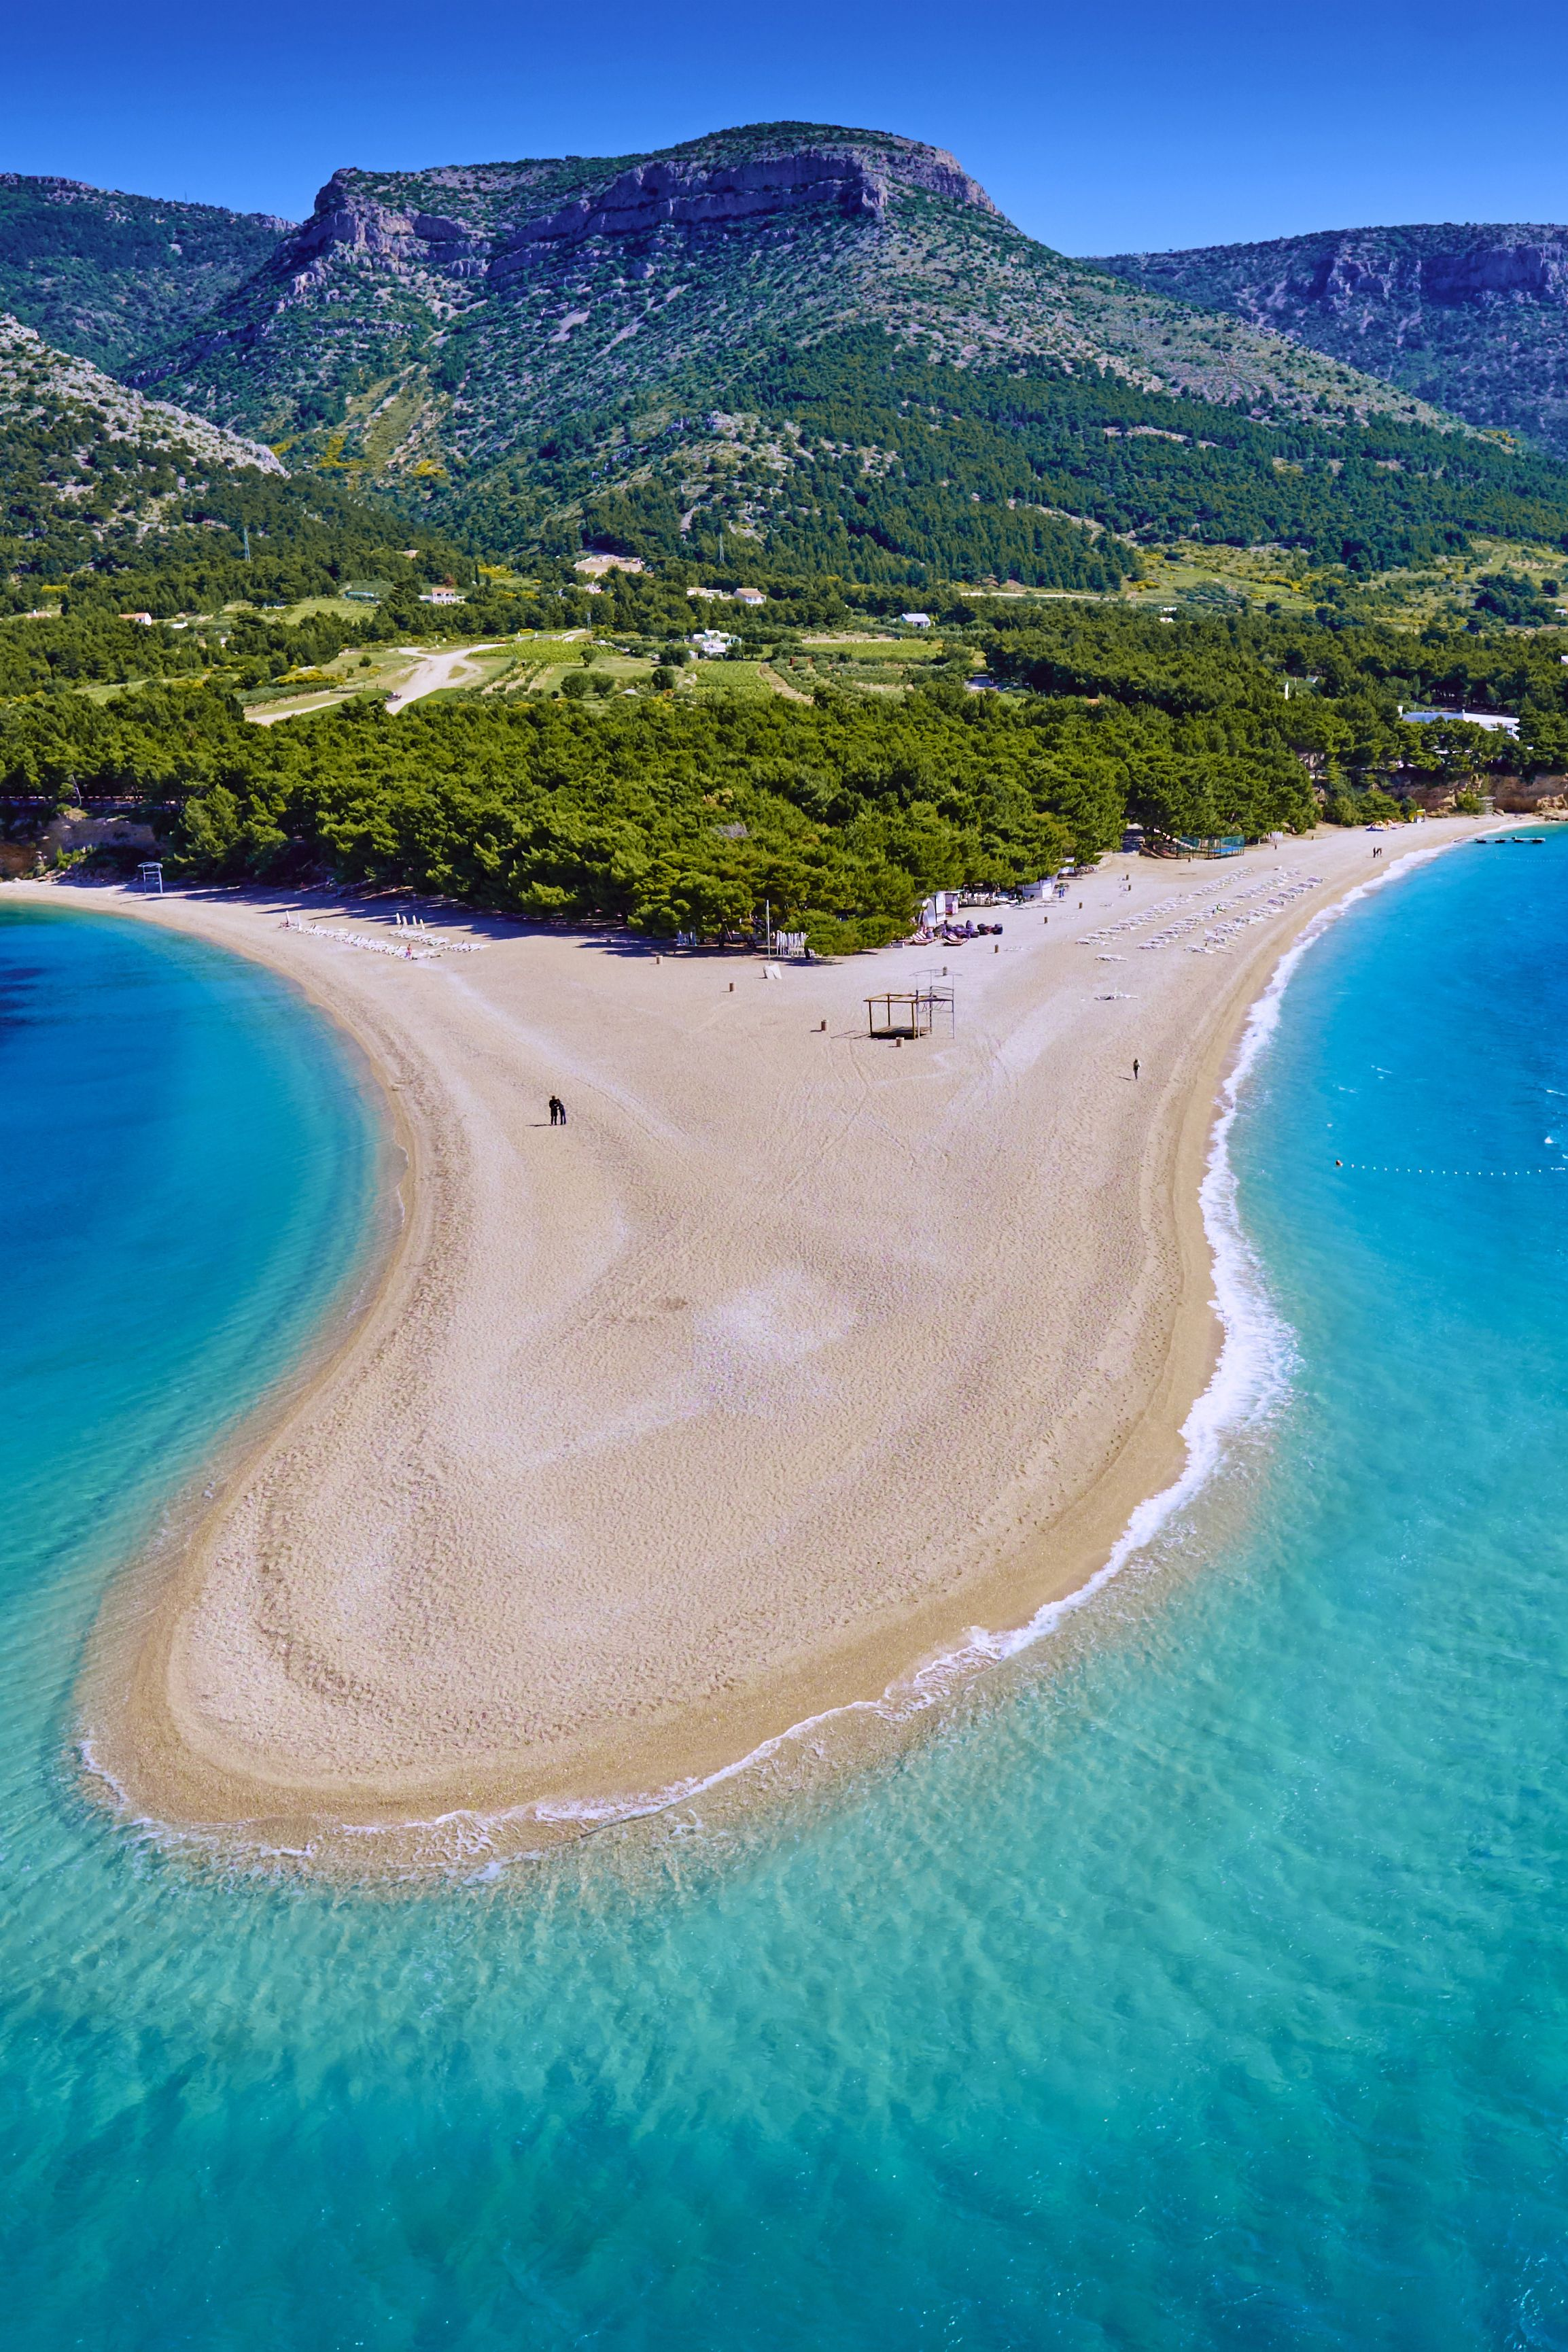 Zlatni Rat Beach Croatia Located On The Southern Coast Of Brac Island Is Nicknamed Golden Horn For Its Unusual Shape That